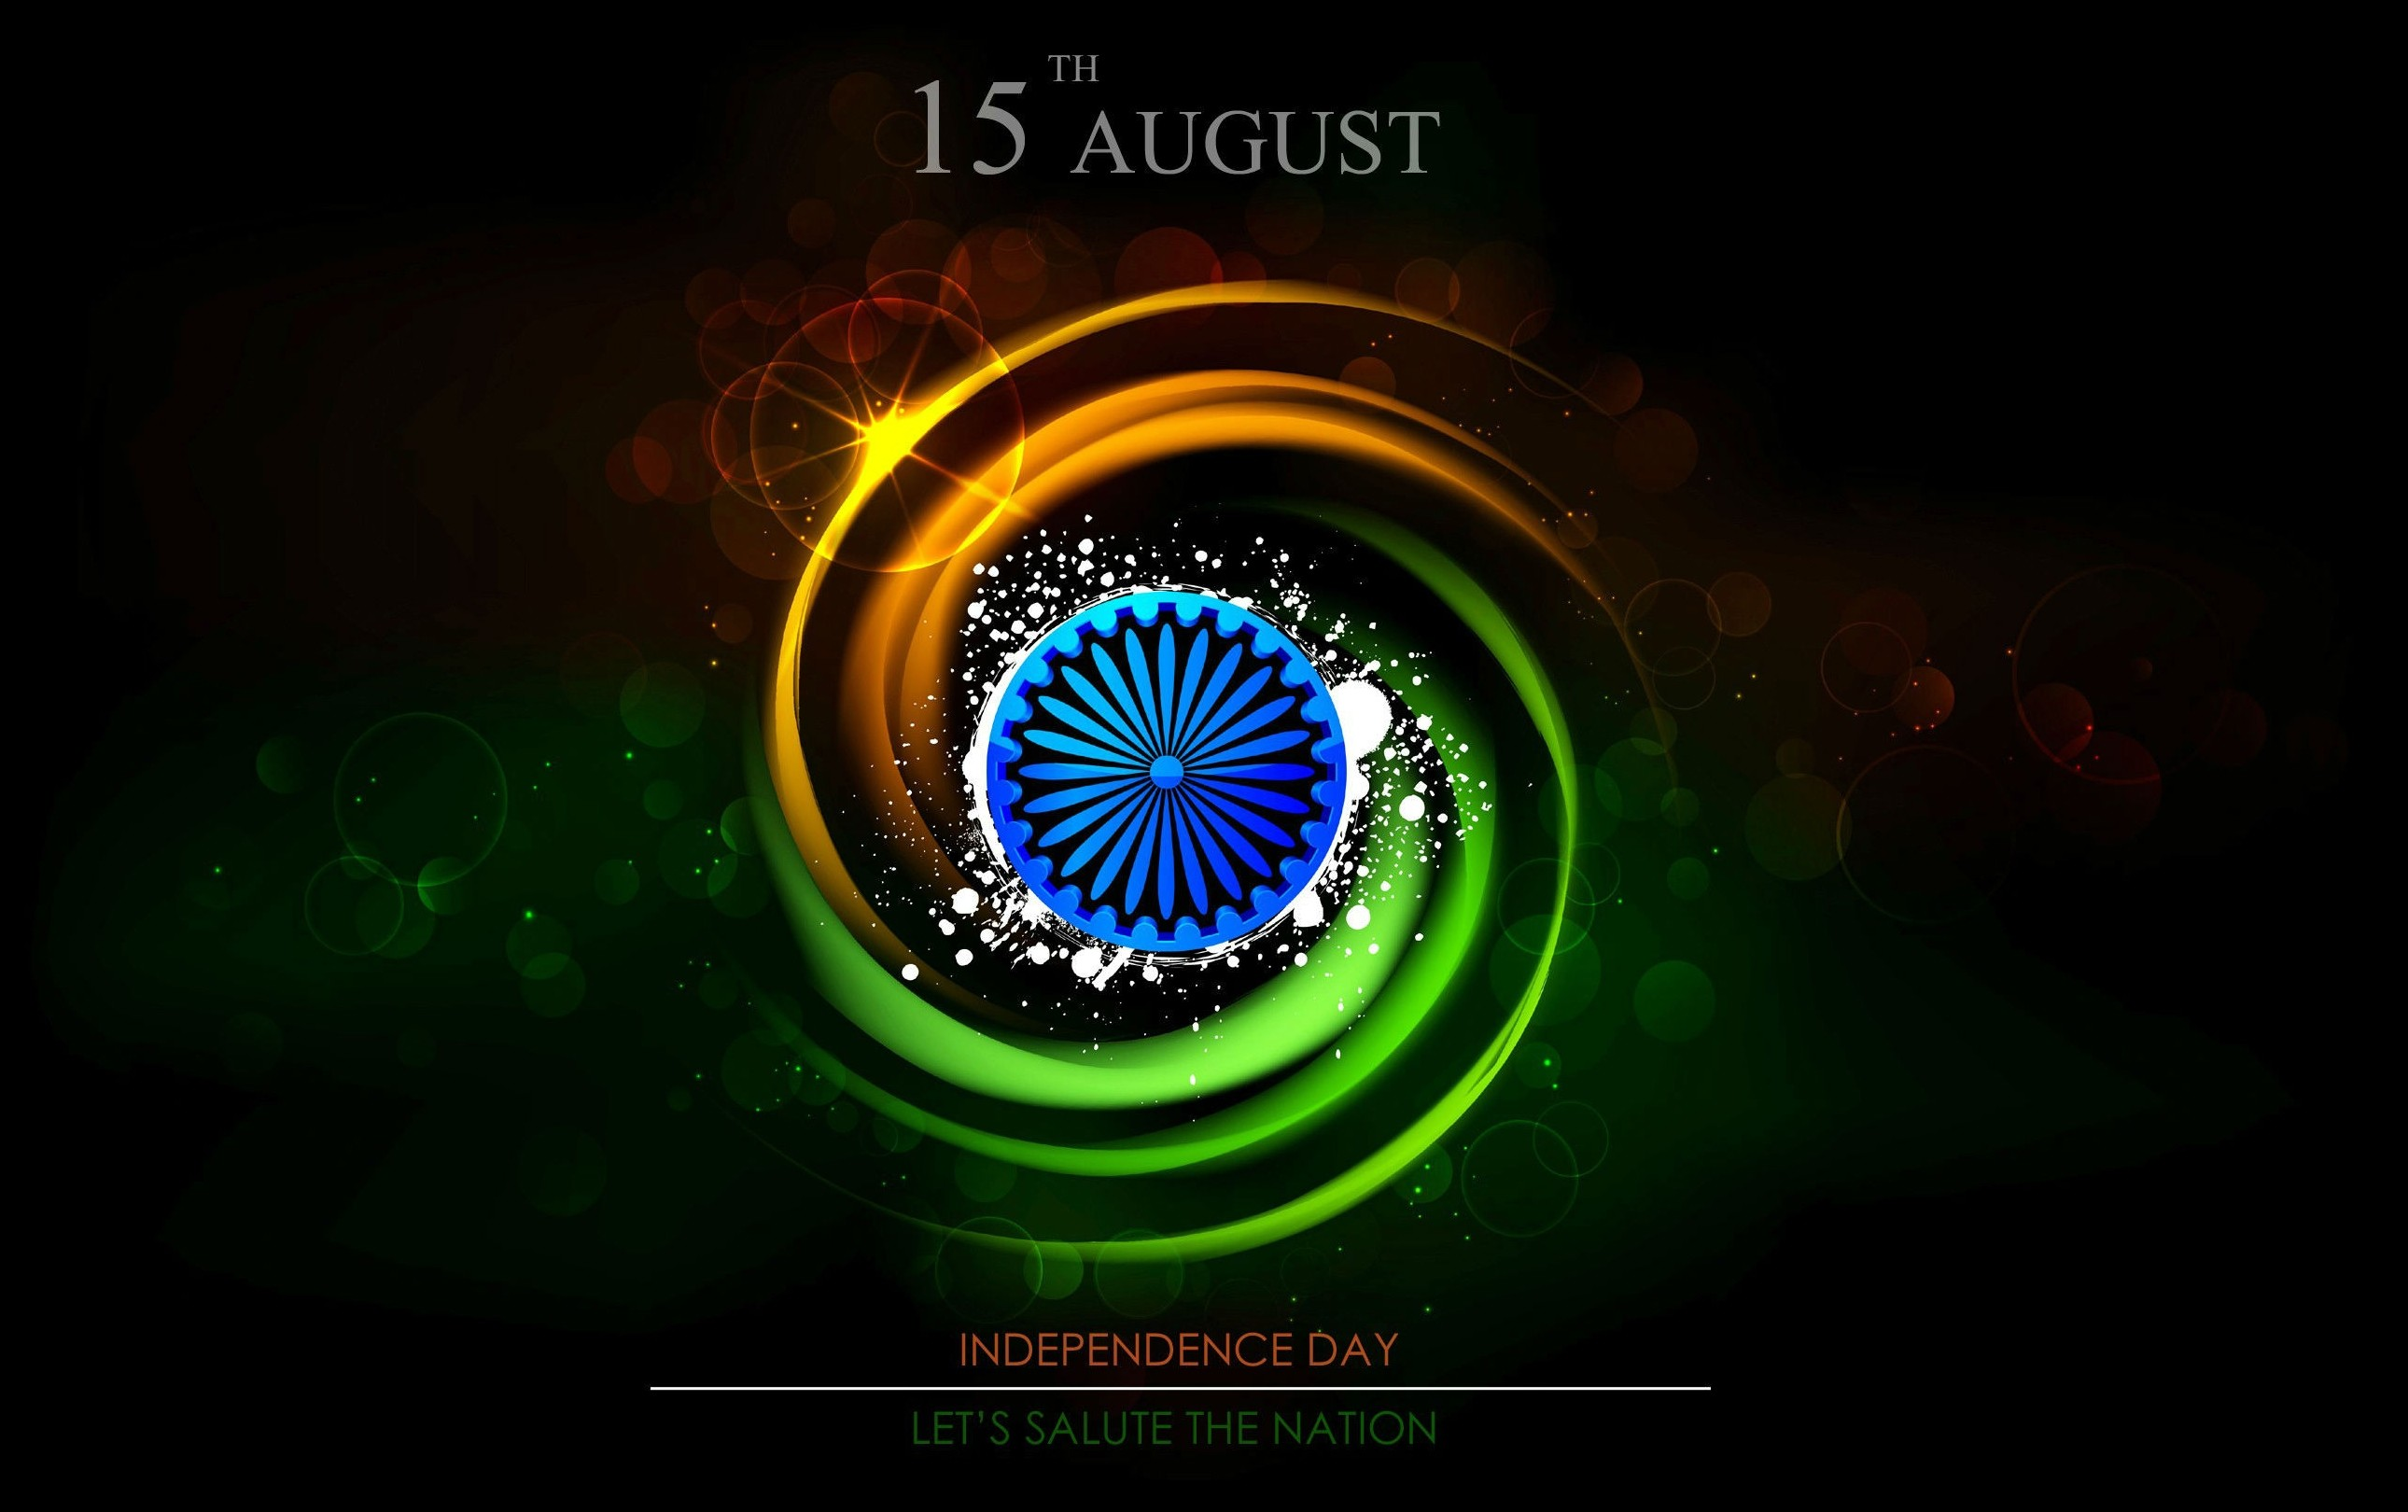 independence day images for whatsapp dp download